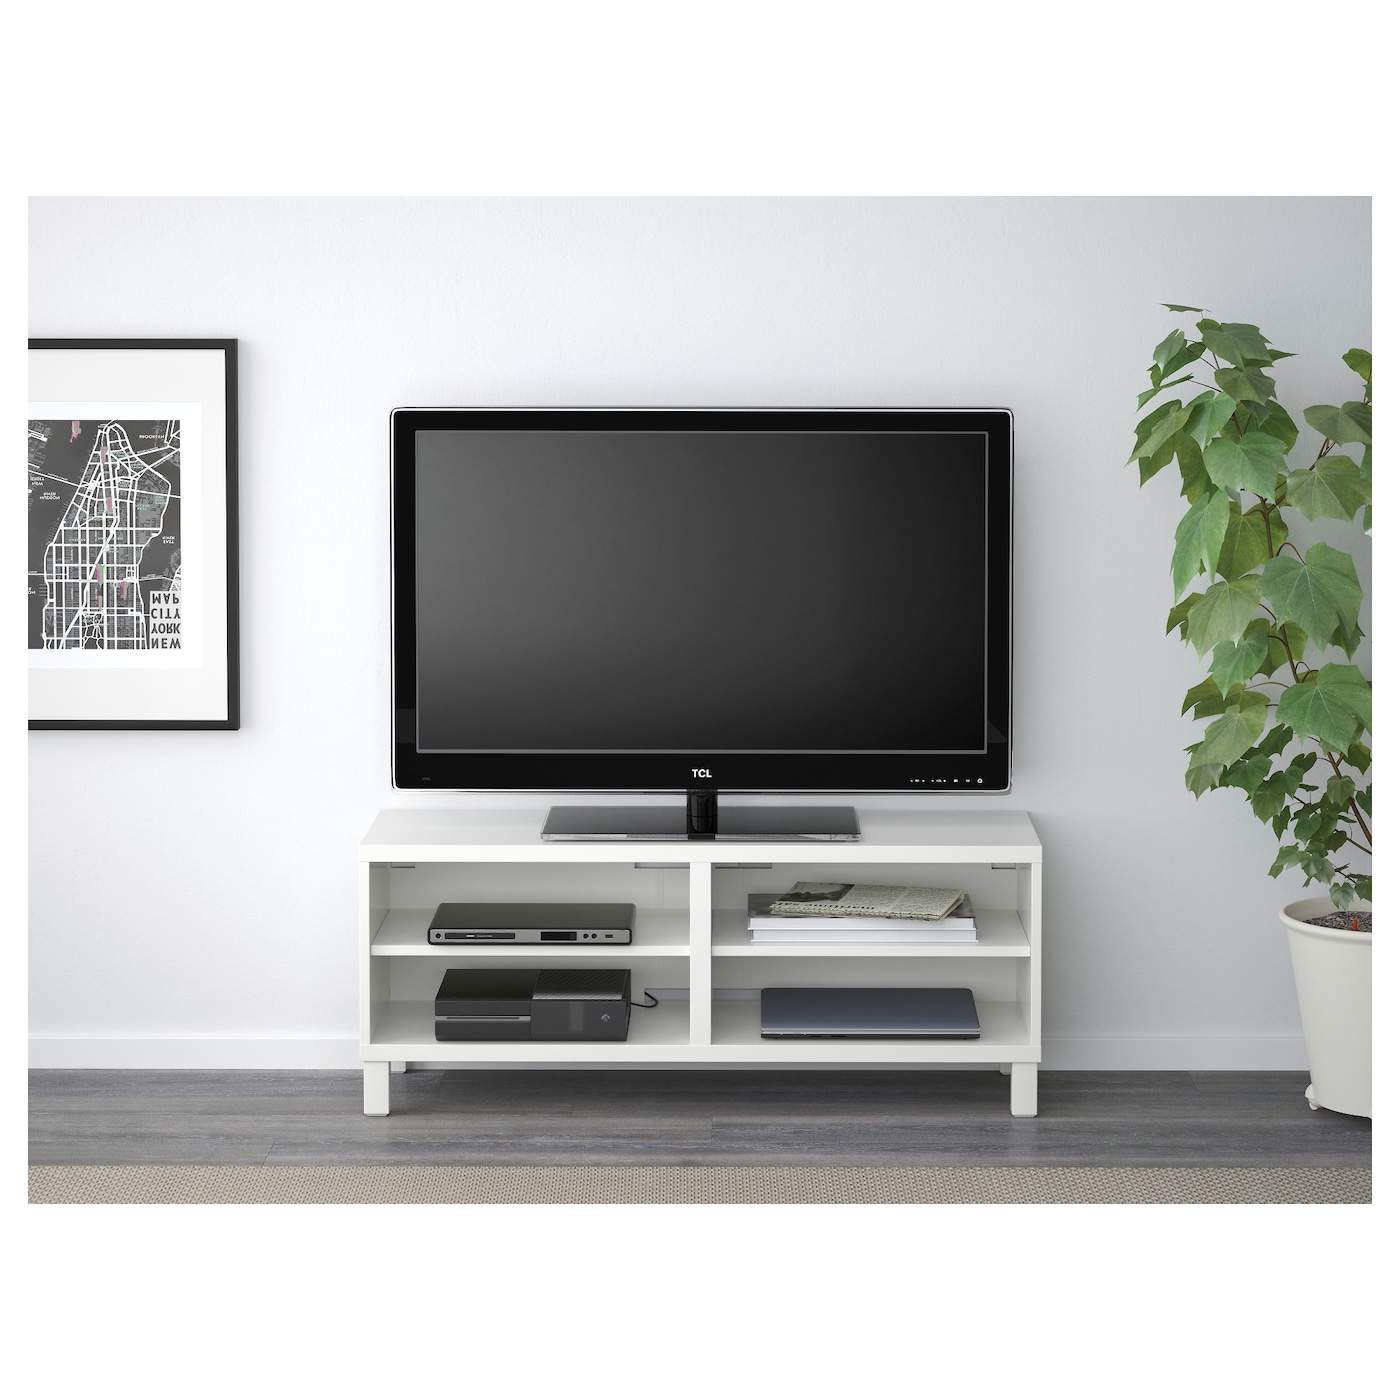 Exceptionnel IKEA BESTÅ TV Bench The Cable Outlet At The Back Makes It Easy To Gather And